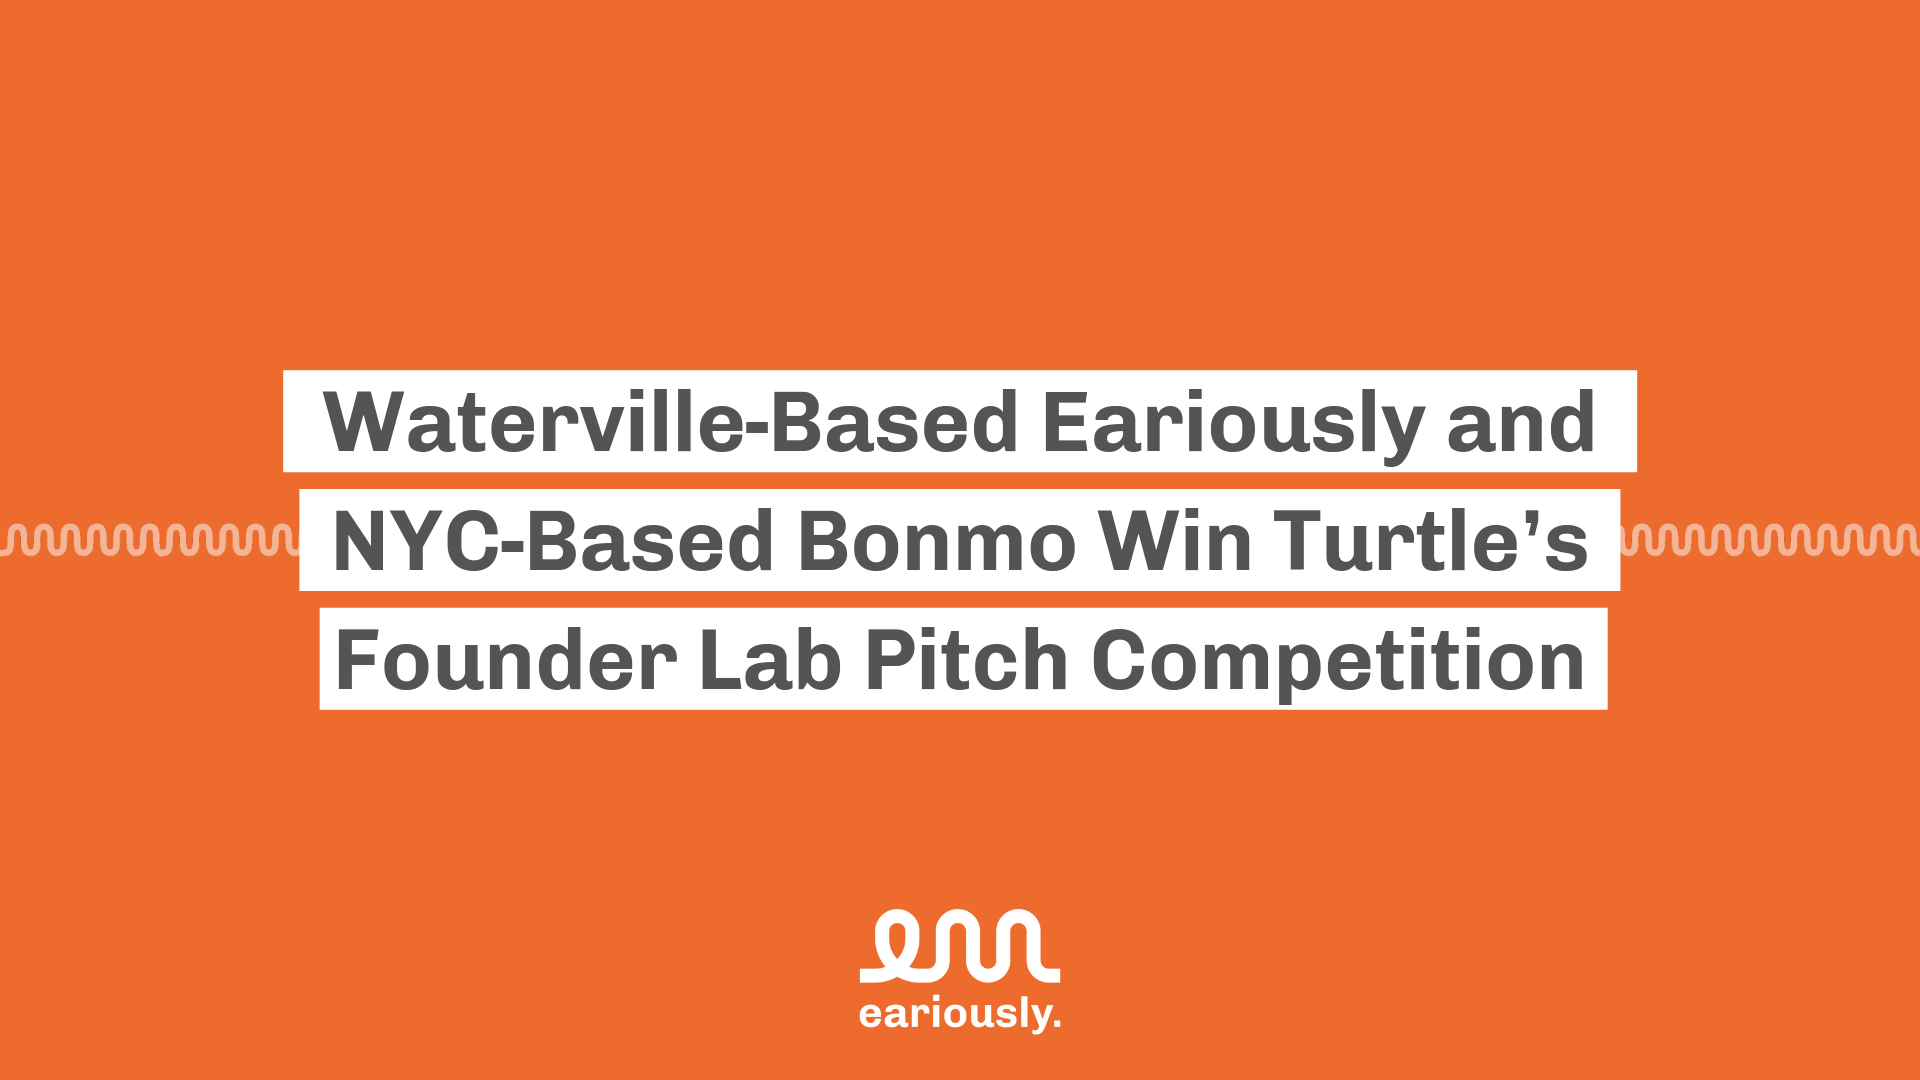 Eariously Bonmo Turtle Founder Lab Pitch Competition Waterville